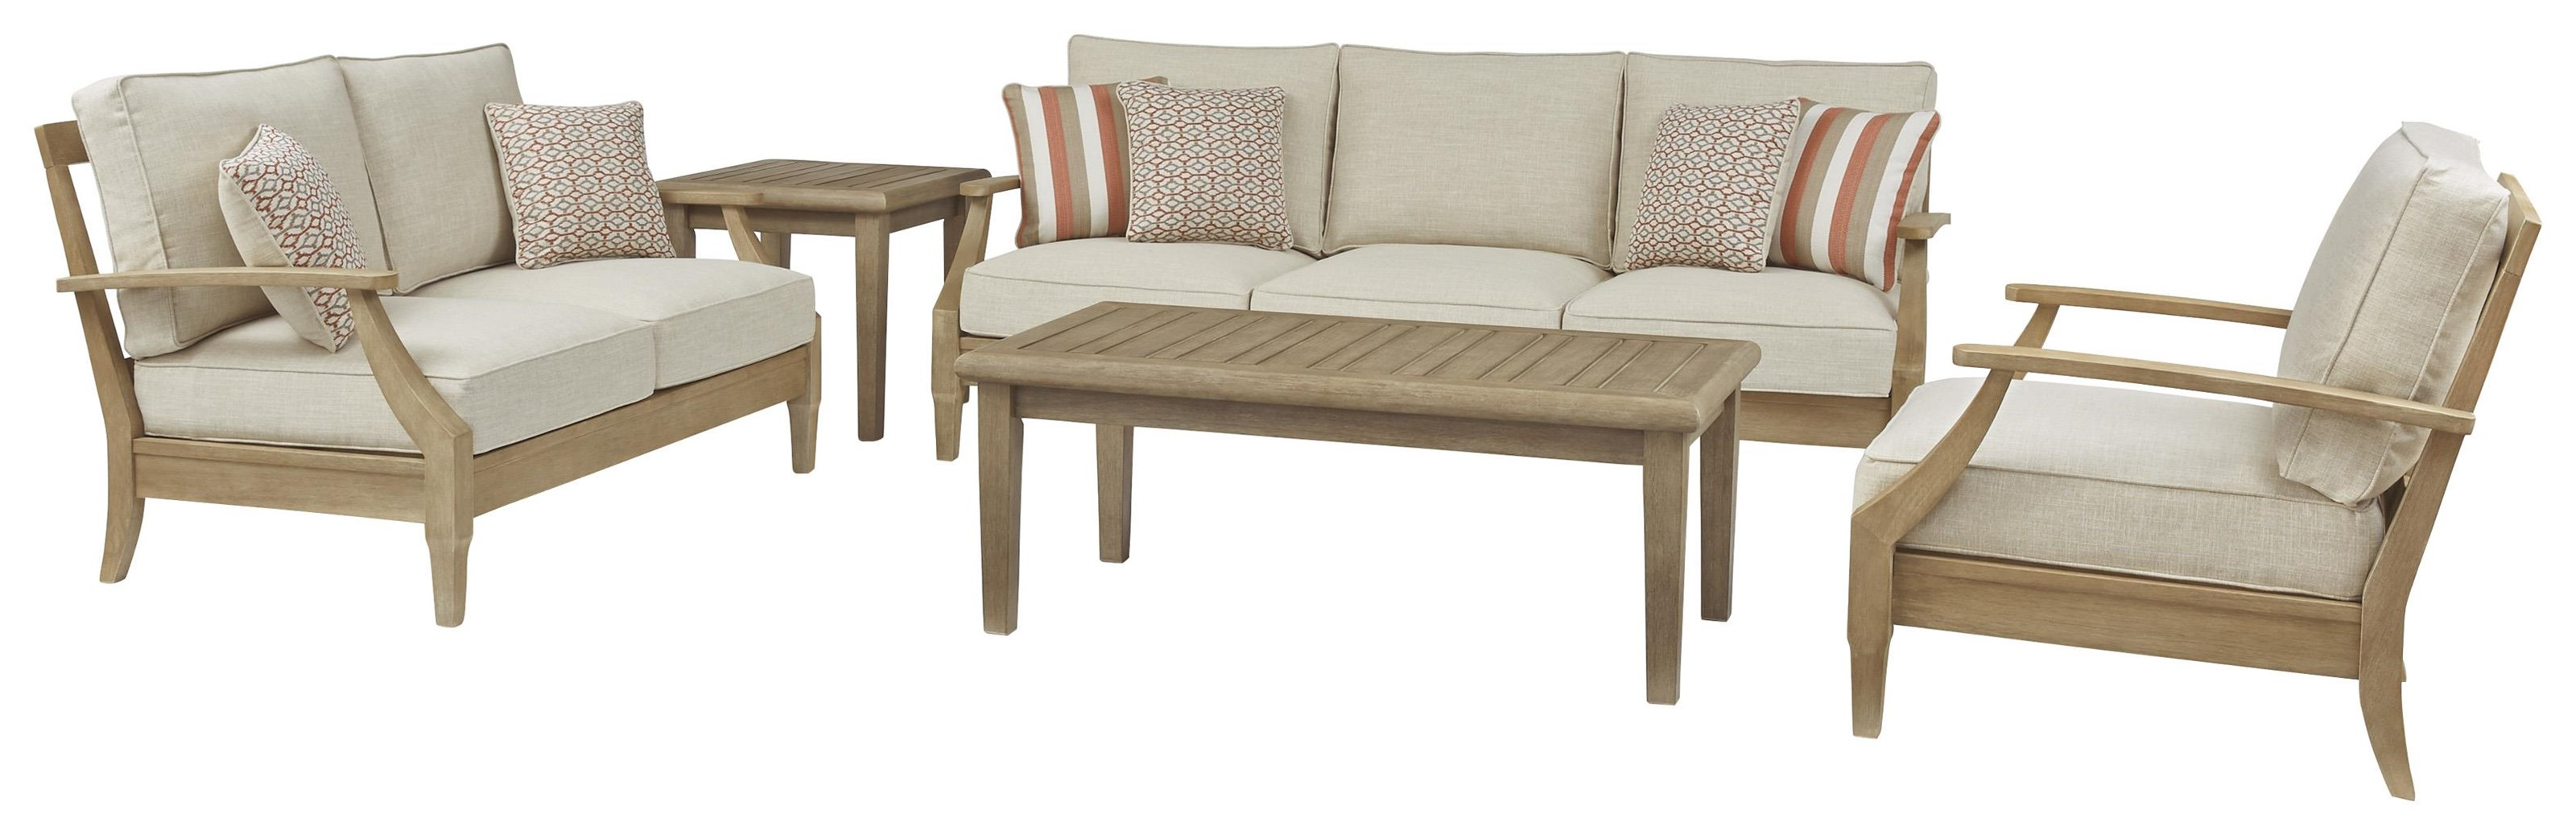 Clare View 3 PC Outdoor Conversation Set by Signature Design by Ashley at Sam Levitz Outlet